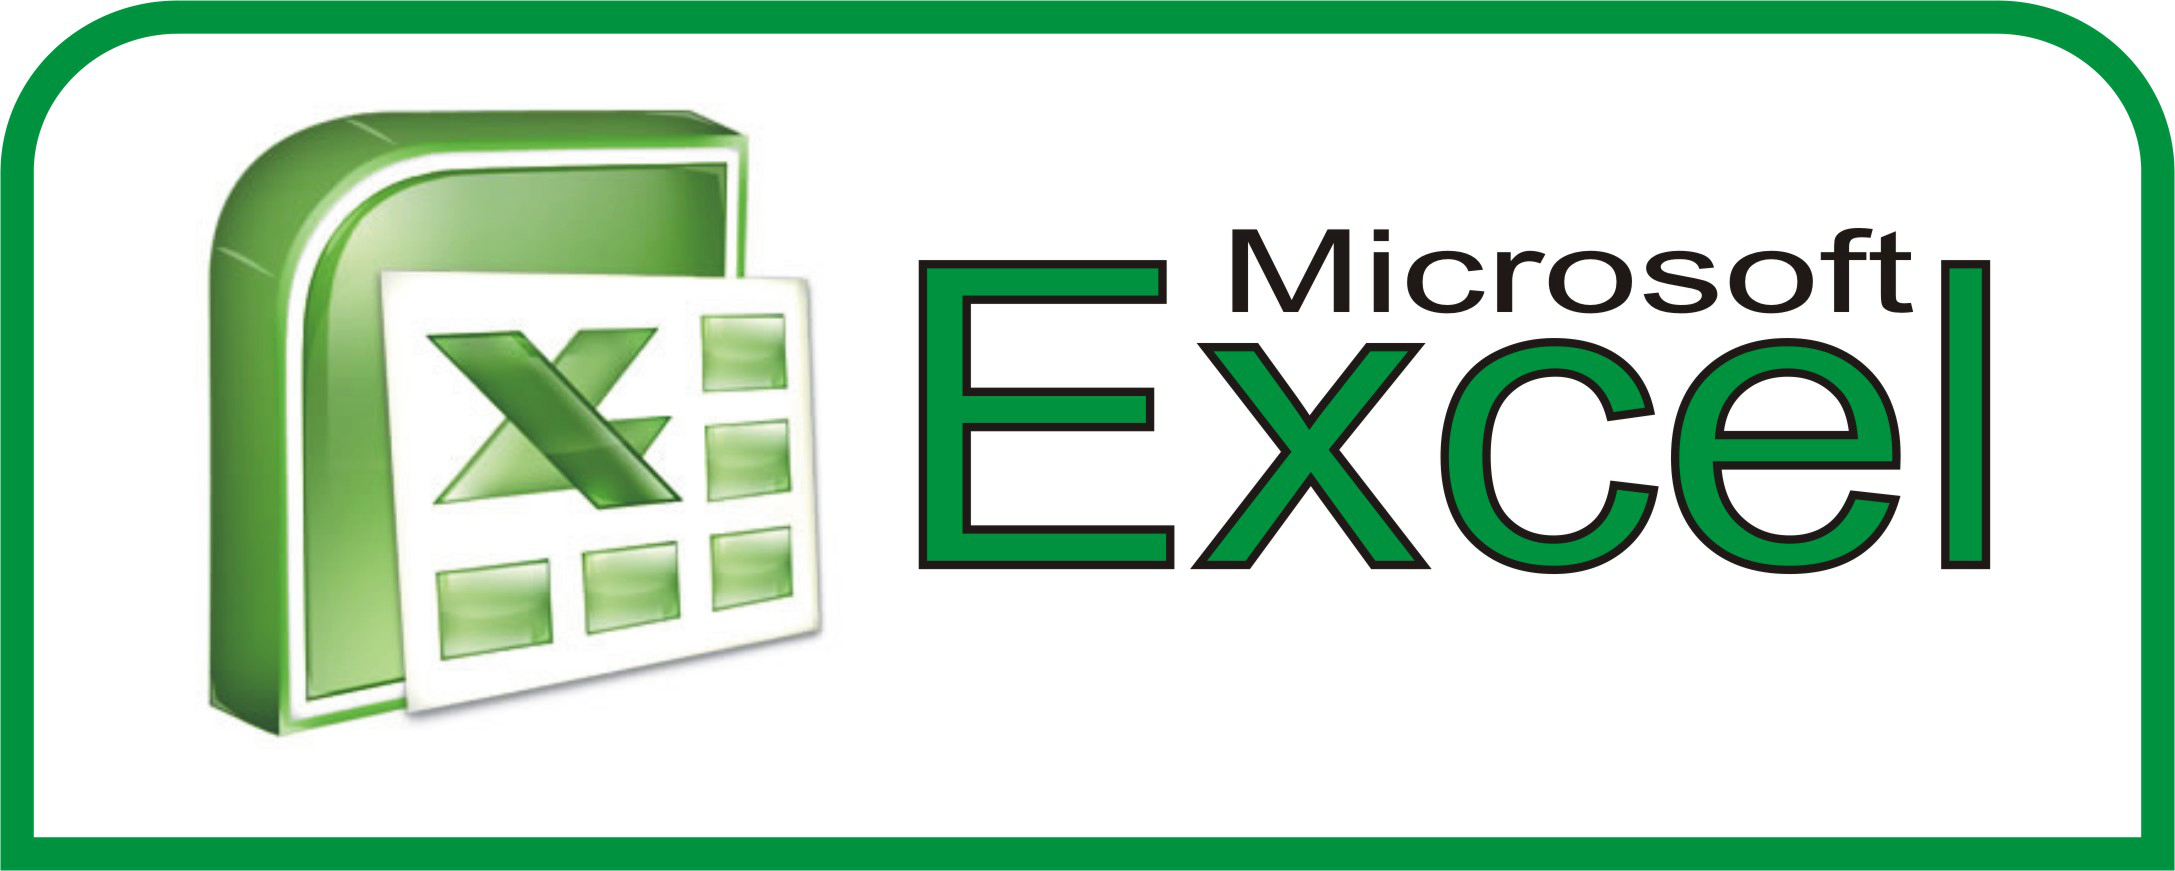 Ediblewildsus  Pleasant  Excel Shortcuts You Probably Didnt Know About  Techdissected With Fascinating Excel Statements Besides Project Management Excel Template Free Furthermore Invoice Format Excel With Astonishing Convert Google Doc To Excel Also Change Range In Excel In Addition Excel In Or Excel At And How To Do Histograms In Excel As Well As Resource Capacity Planning Excel Additionally Excel Vba Loop Until From Techdissectedcom With Ediblewildsus  Fascinating  Excel Shortcuts You Probably Didnt Know About  Techdissected With Astonishing Excel Statements Besides Project Management Excel Template Free Furthermore Invoice Format Excel And Pleasant Convert Google Doc To Excel Also Change Range In Excel In Addition Excel In Or Excel At From Techdissectedcom